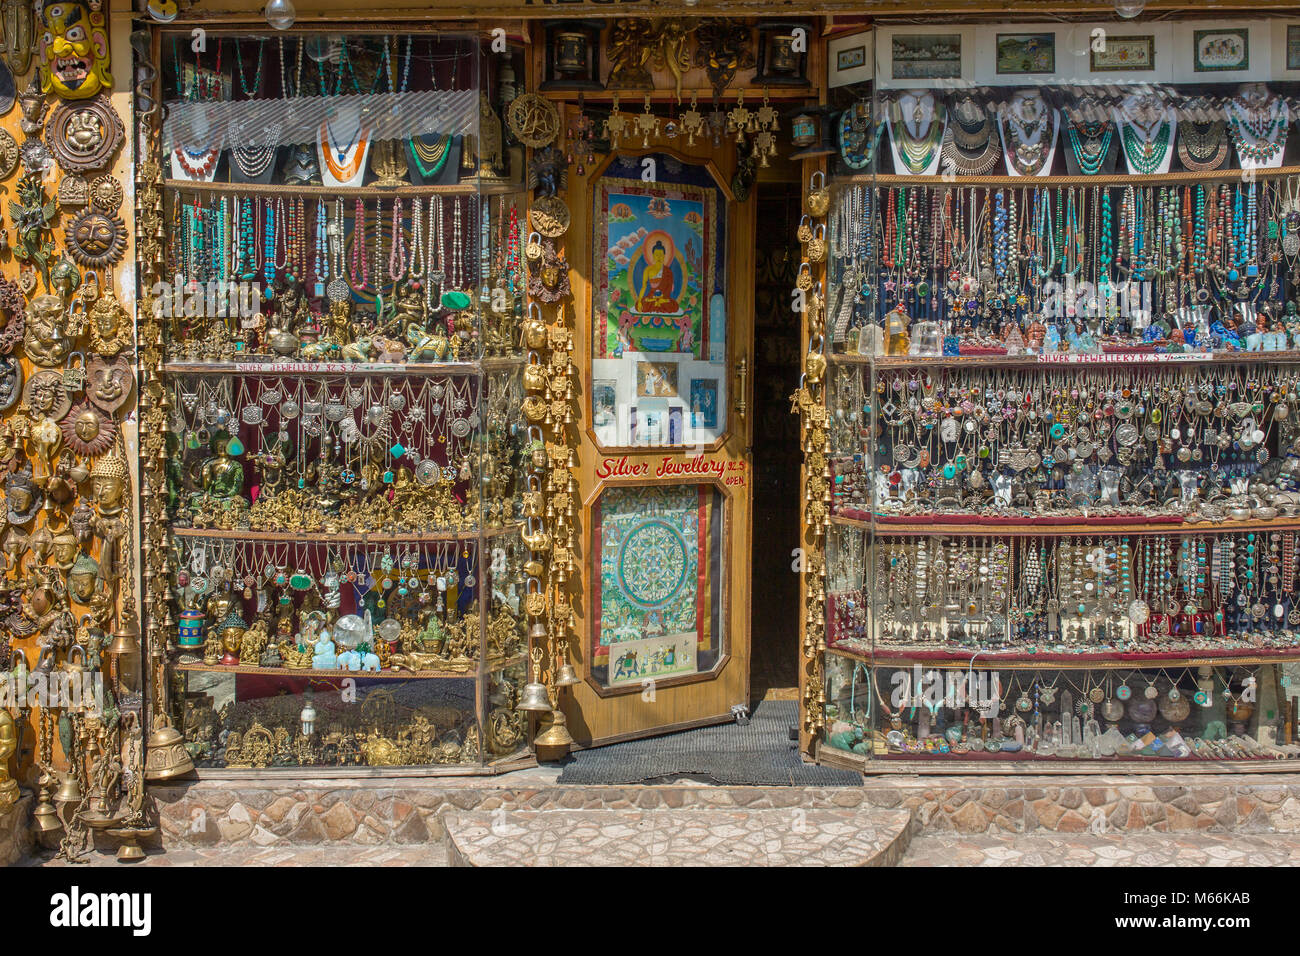 Manali, India - May 26, 2017: Traditional souvenirs and silver jewelleries indian shop - Stock Image